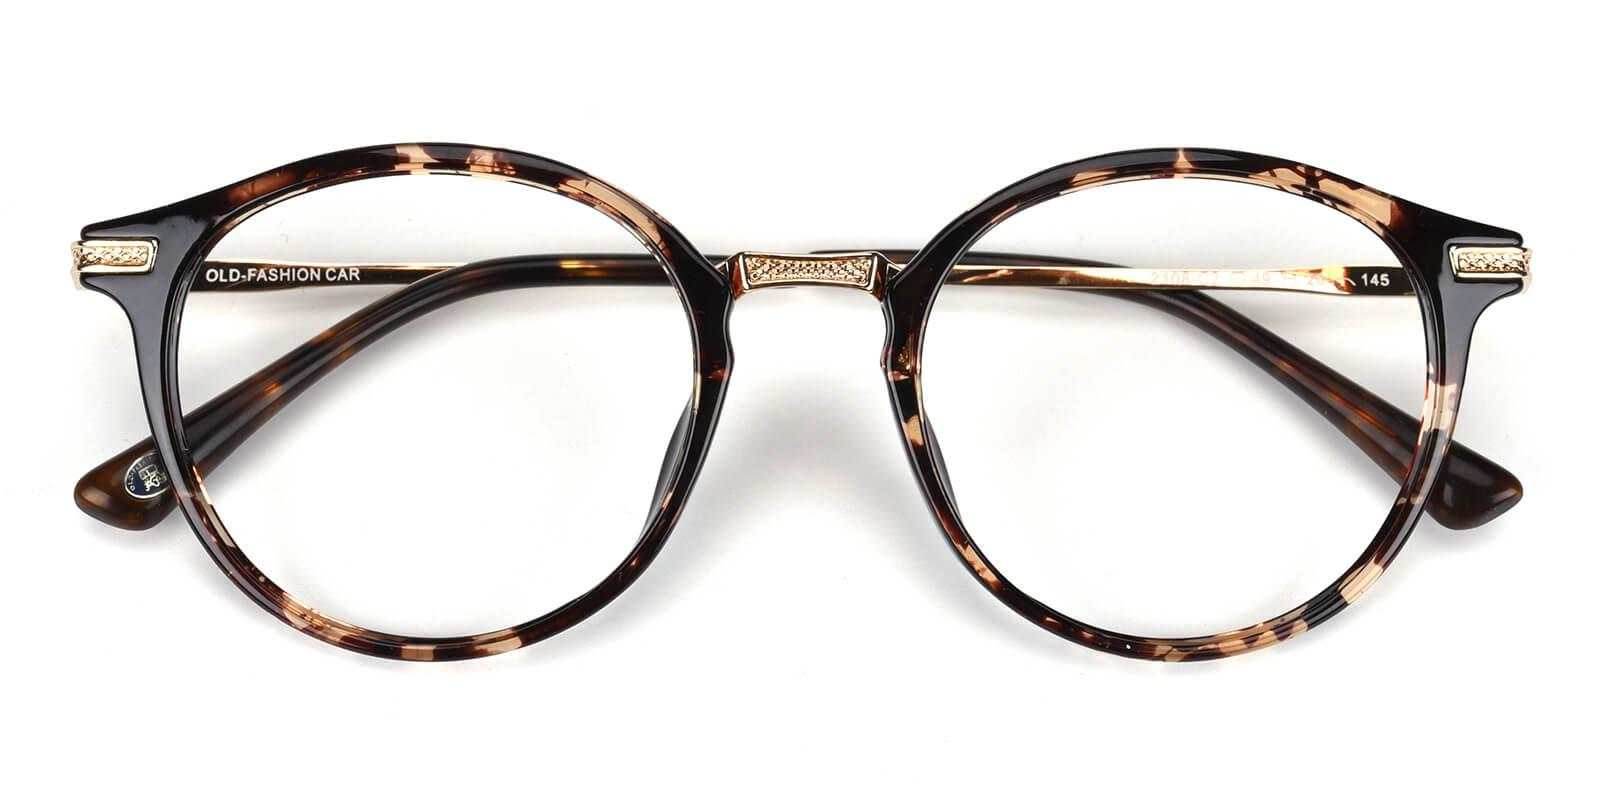 Rebel-Tortoise-Round-Combination-Eyeglasses-detail